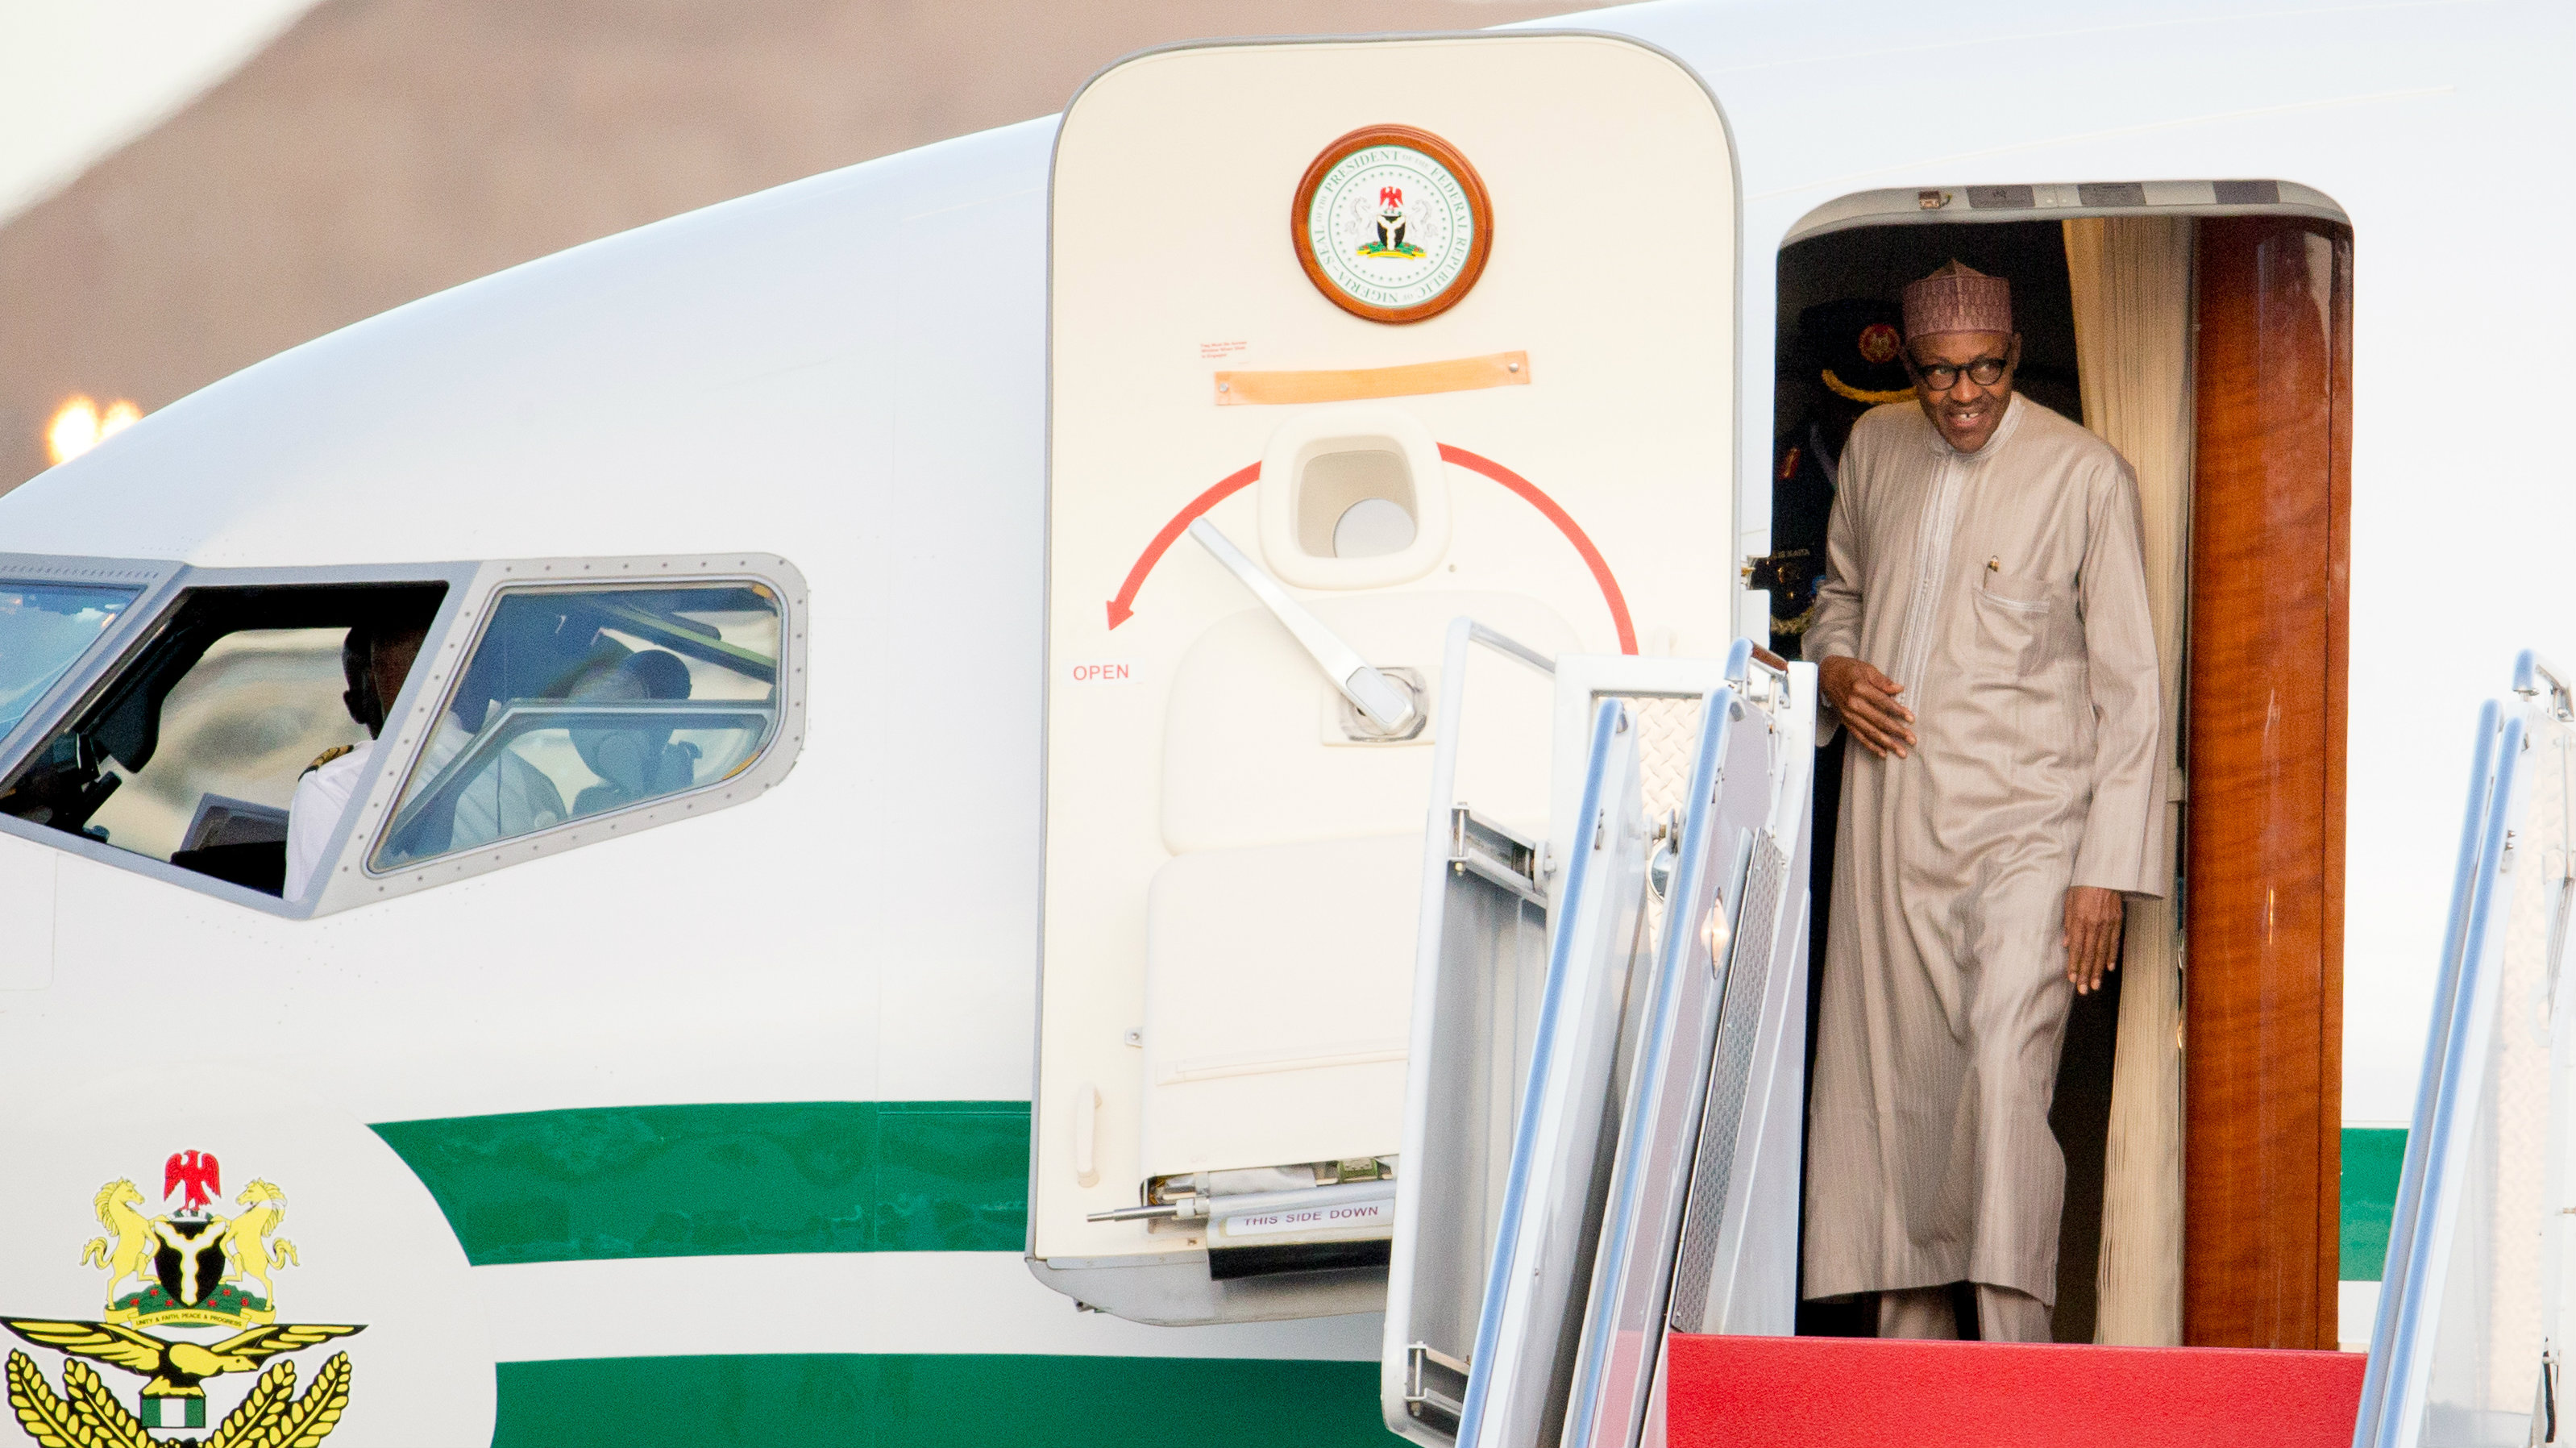 Nigerian President Muhammadu Buhari arrives at Andrews Air Force Base, Md., Wednesday, March 30, 2016. Buhari is in Washington to attend the Nuclear Security Summit.